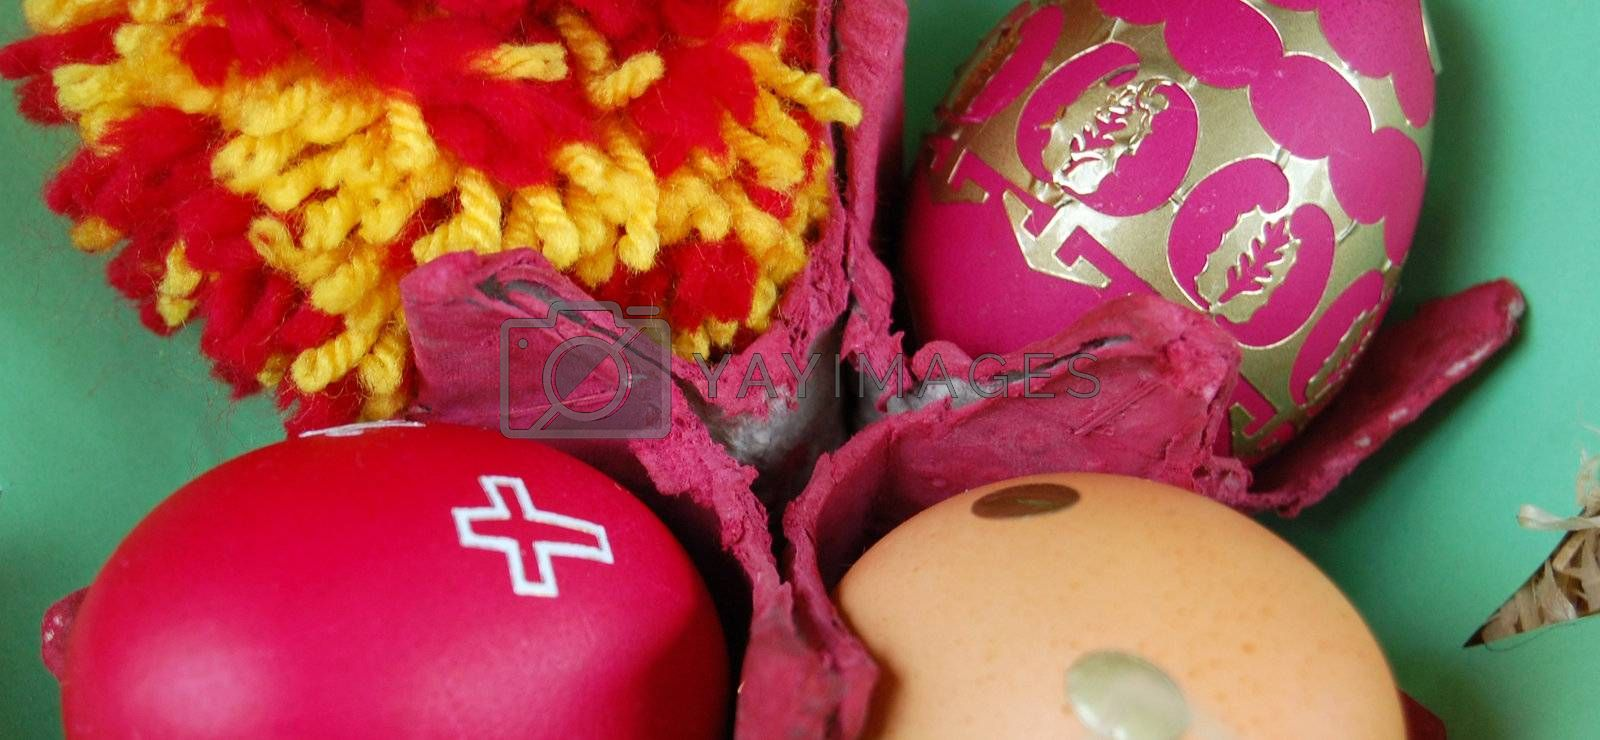 easter eggs by nehru